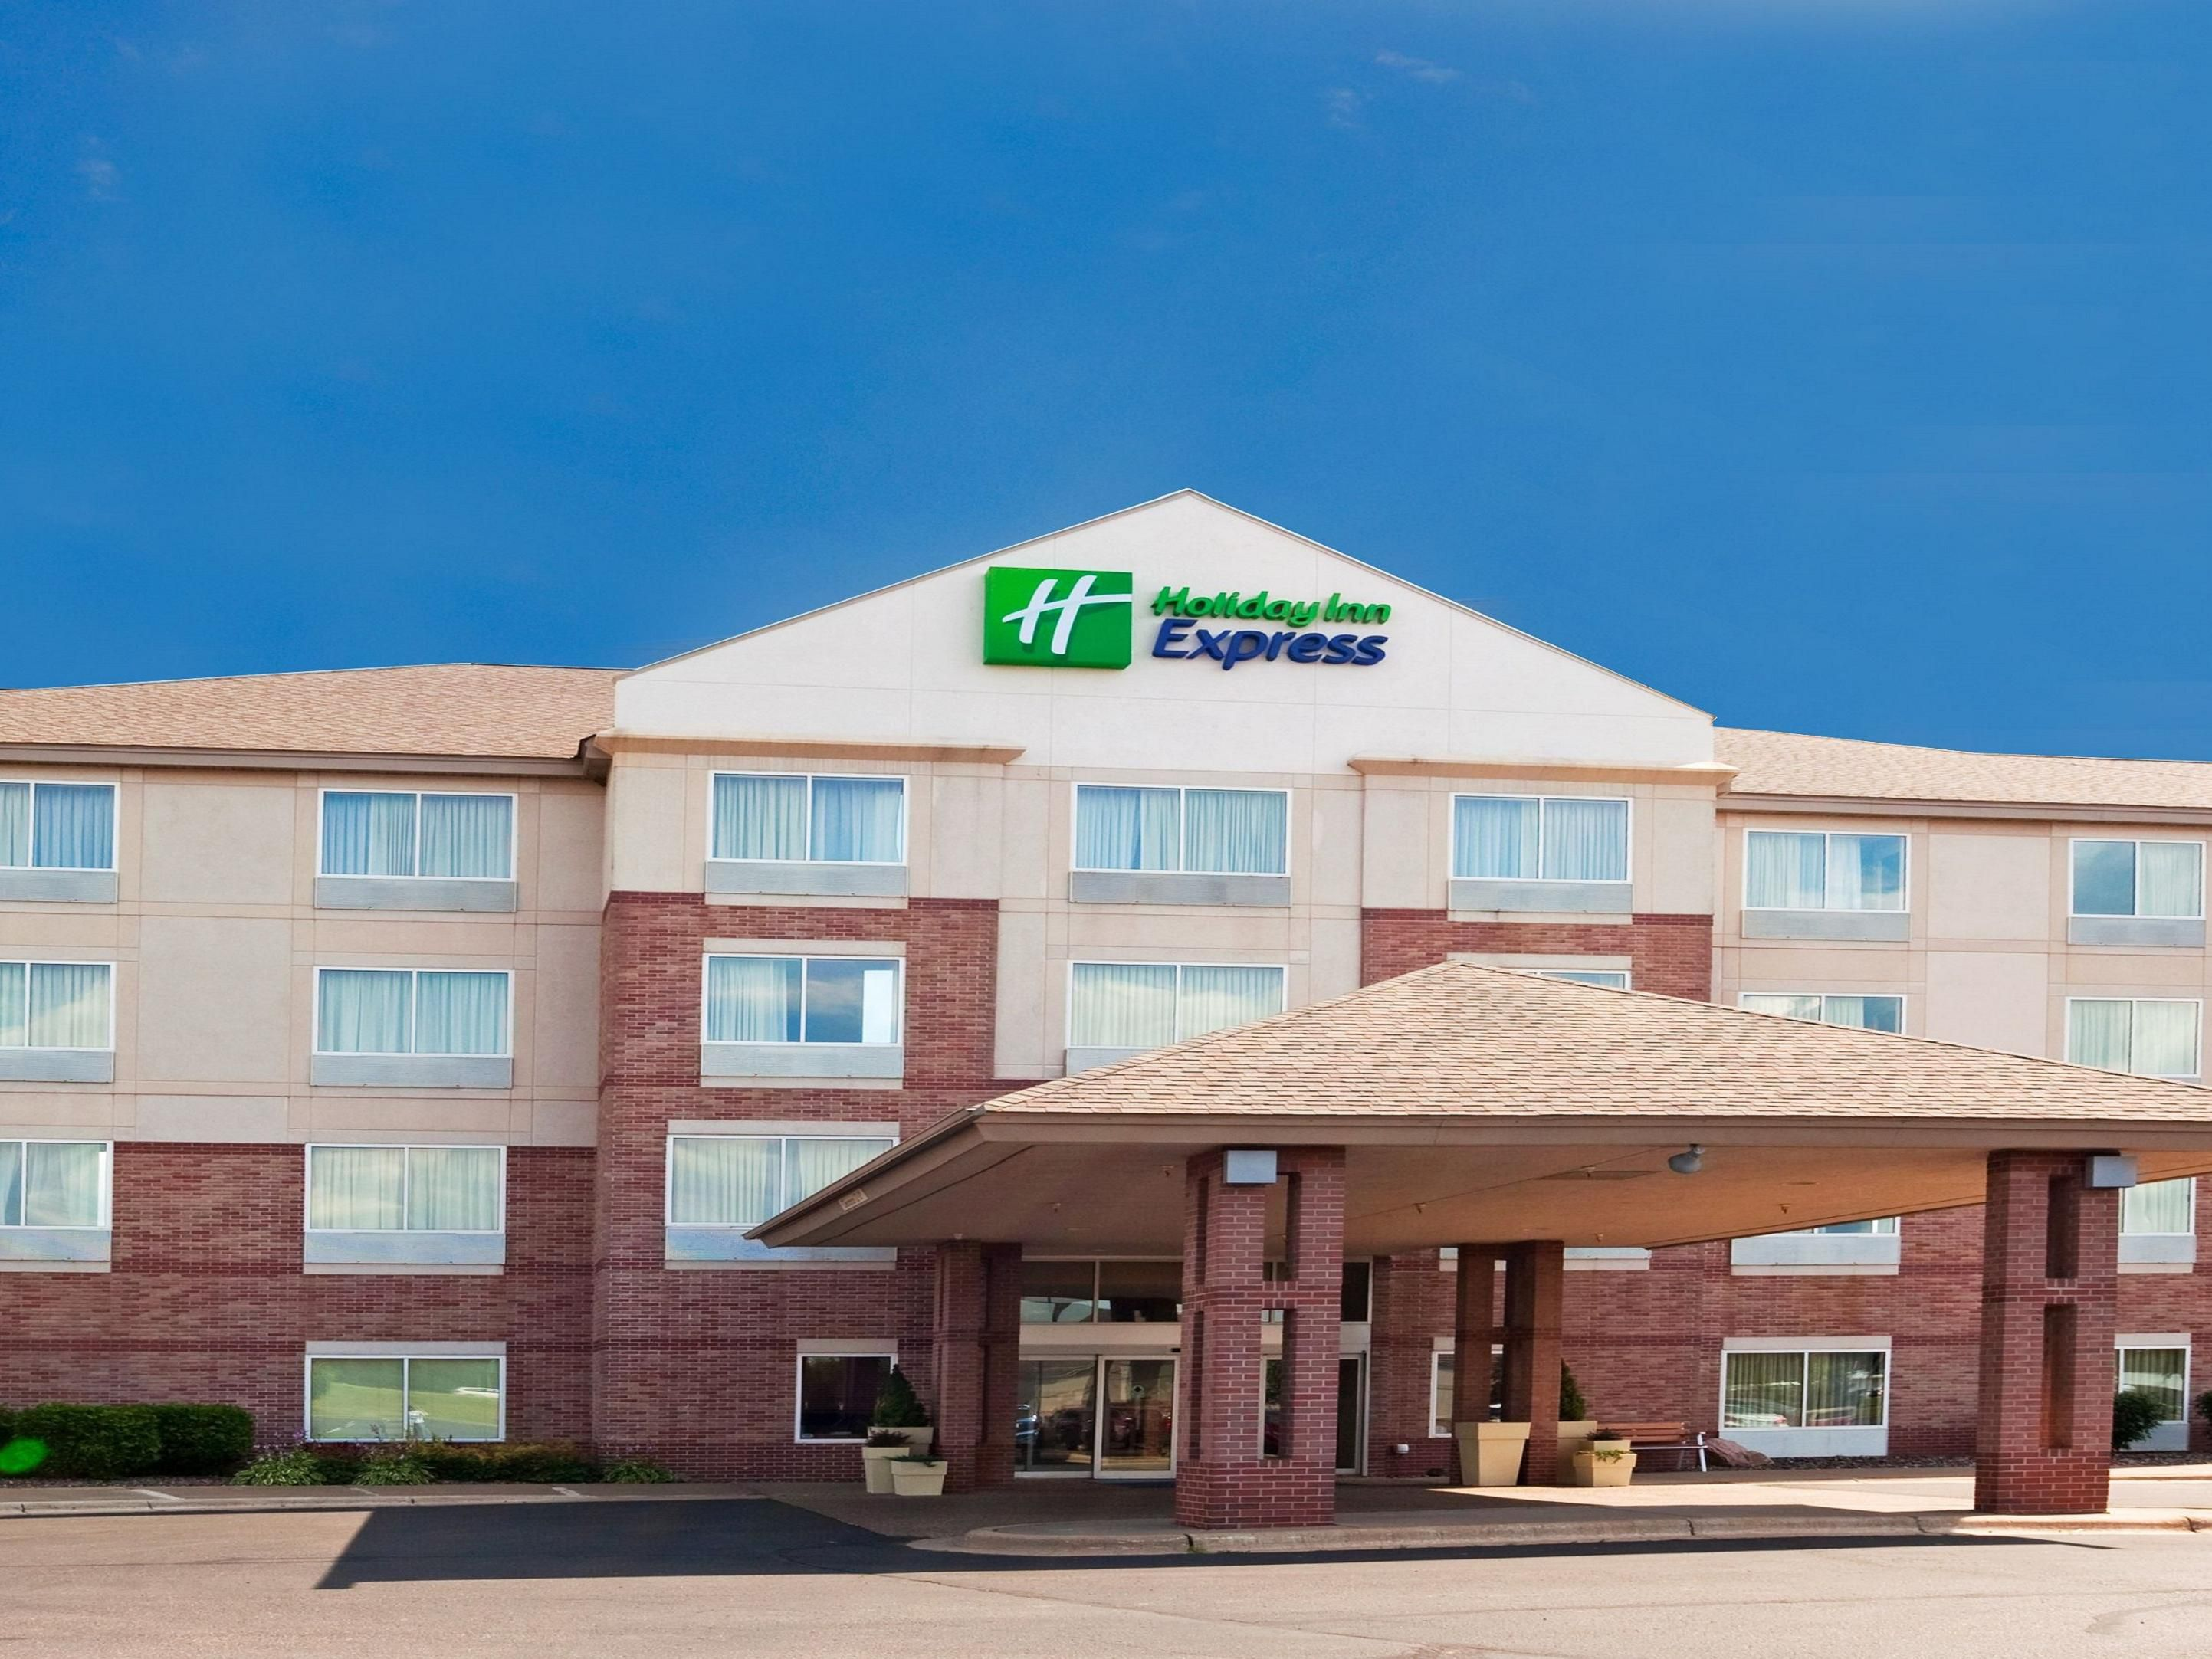 Welcome to the St. Croix Valley Holiday Inn Express!